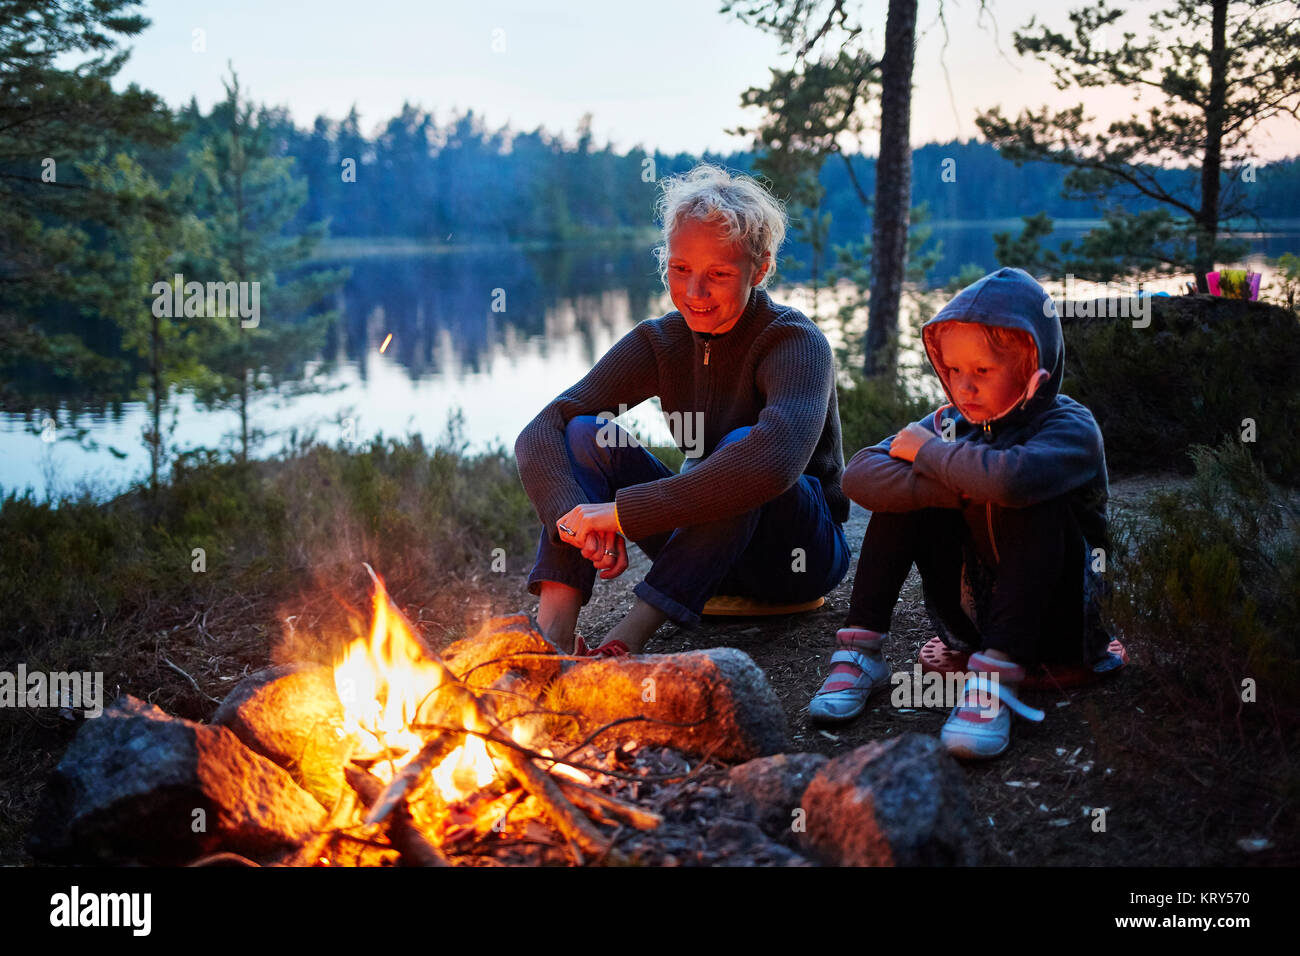 Mother and daughter by a campfire in Gullspang, Sweden - Stock Image